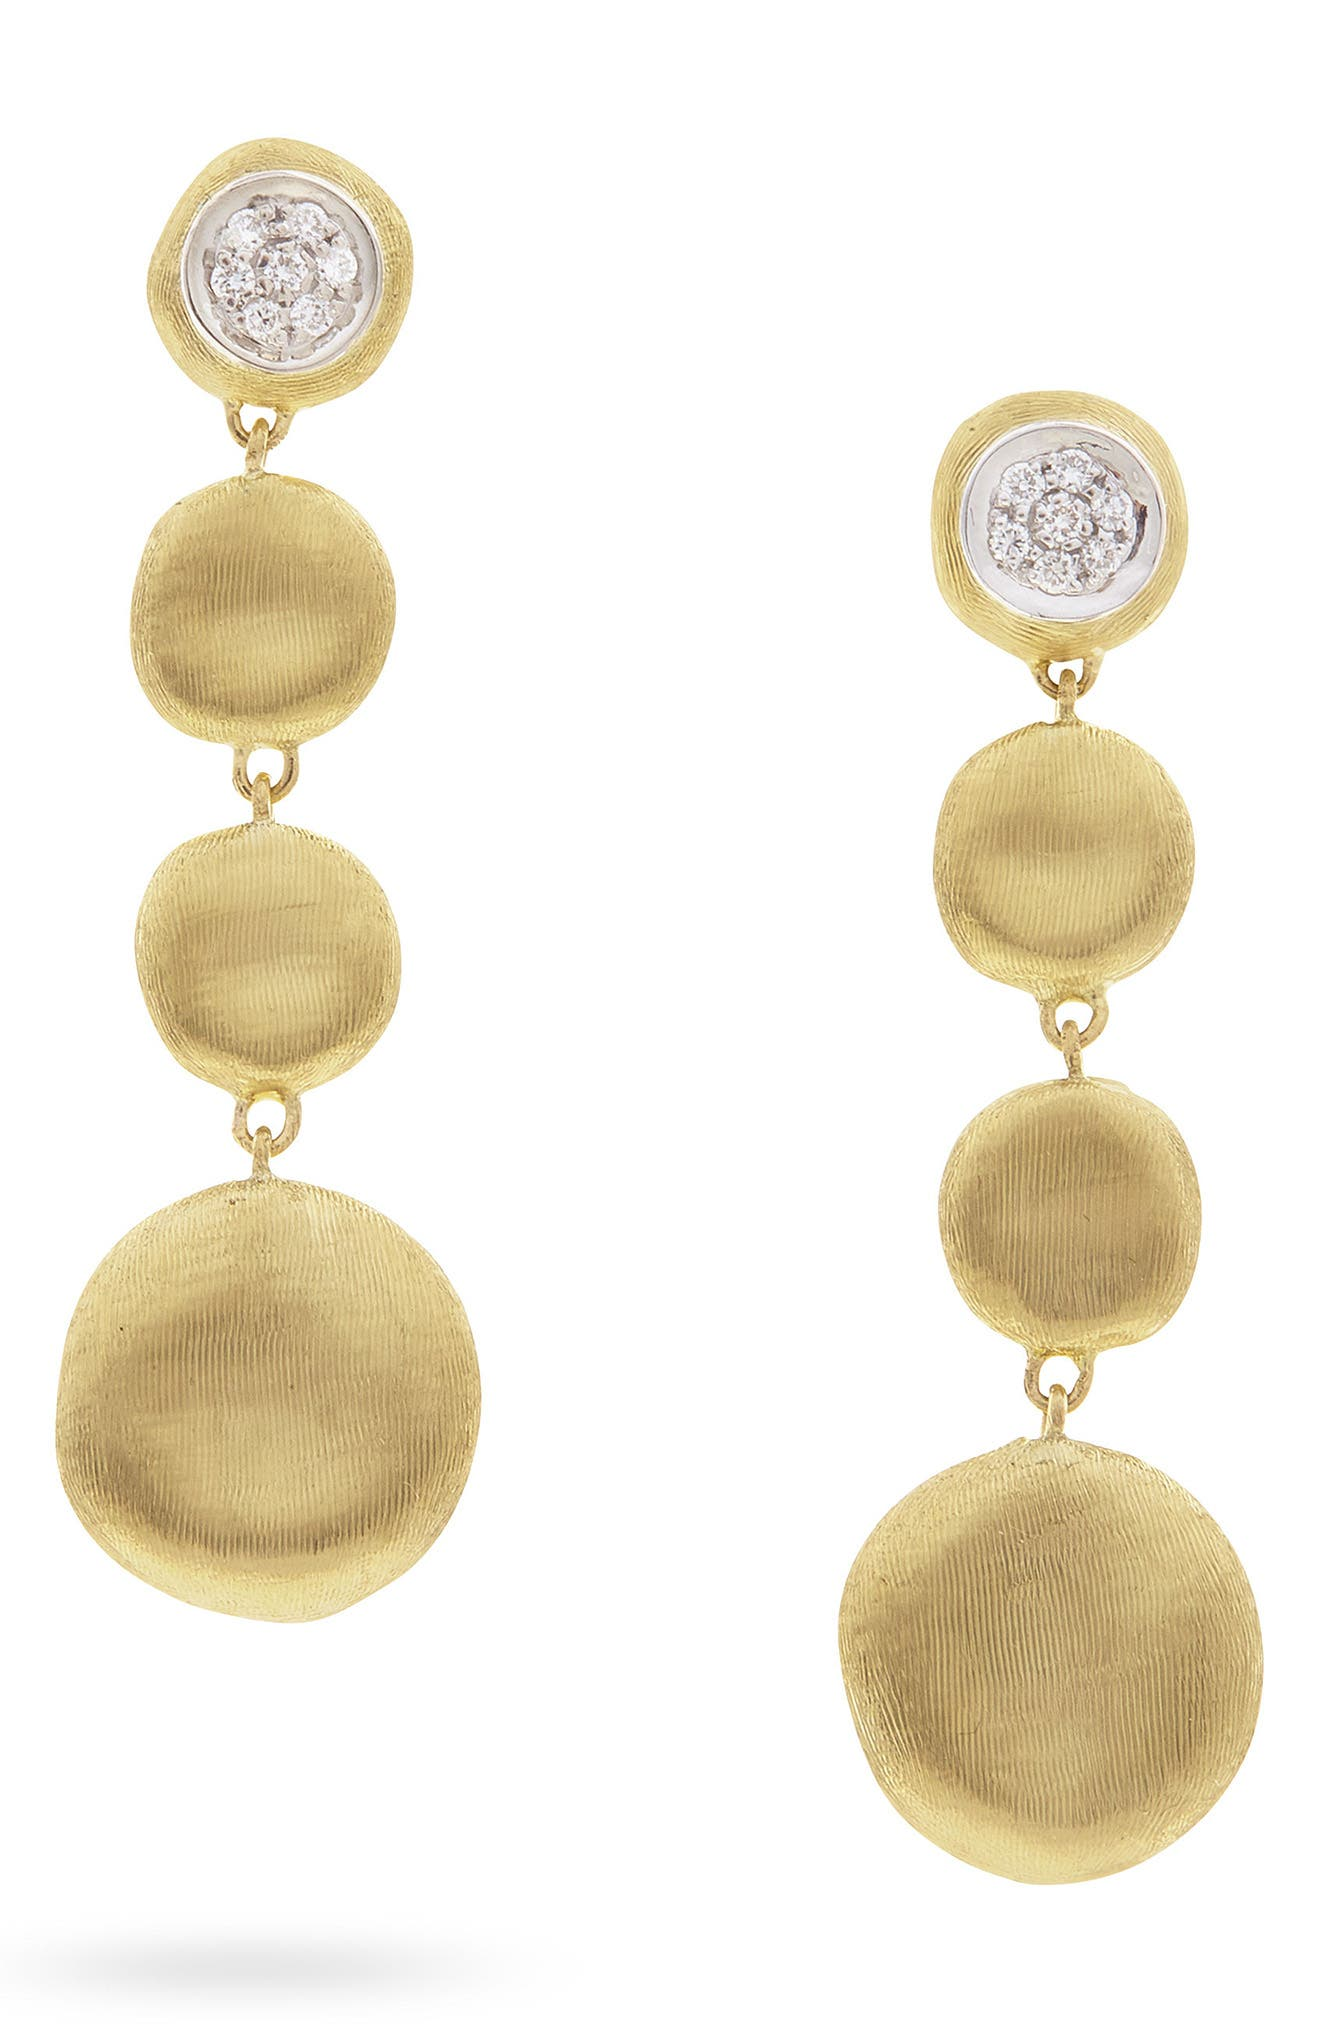 Jaipur Diamond Linear Drop Earrings,                             Main thumbnail 1, color,                             YELLOW GOLD